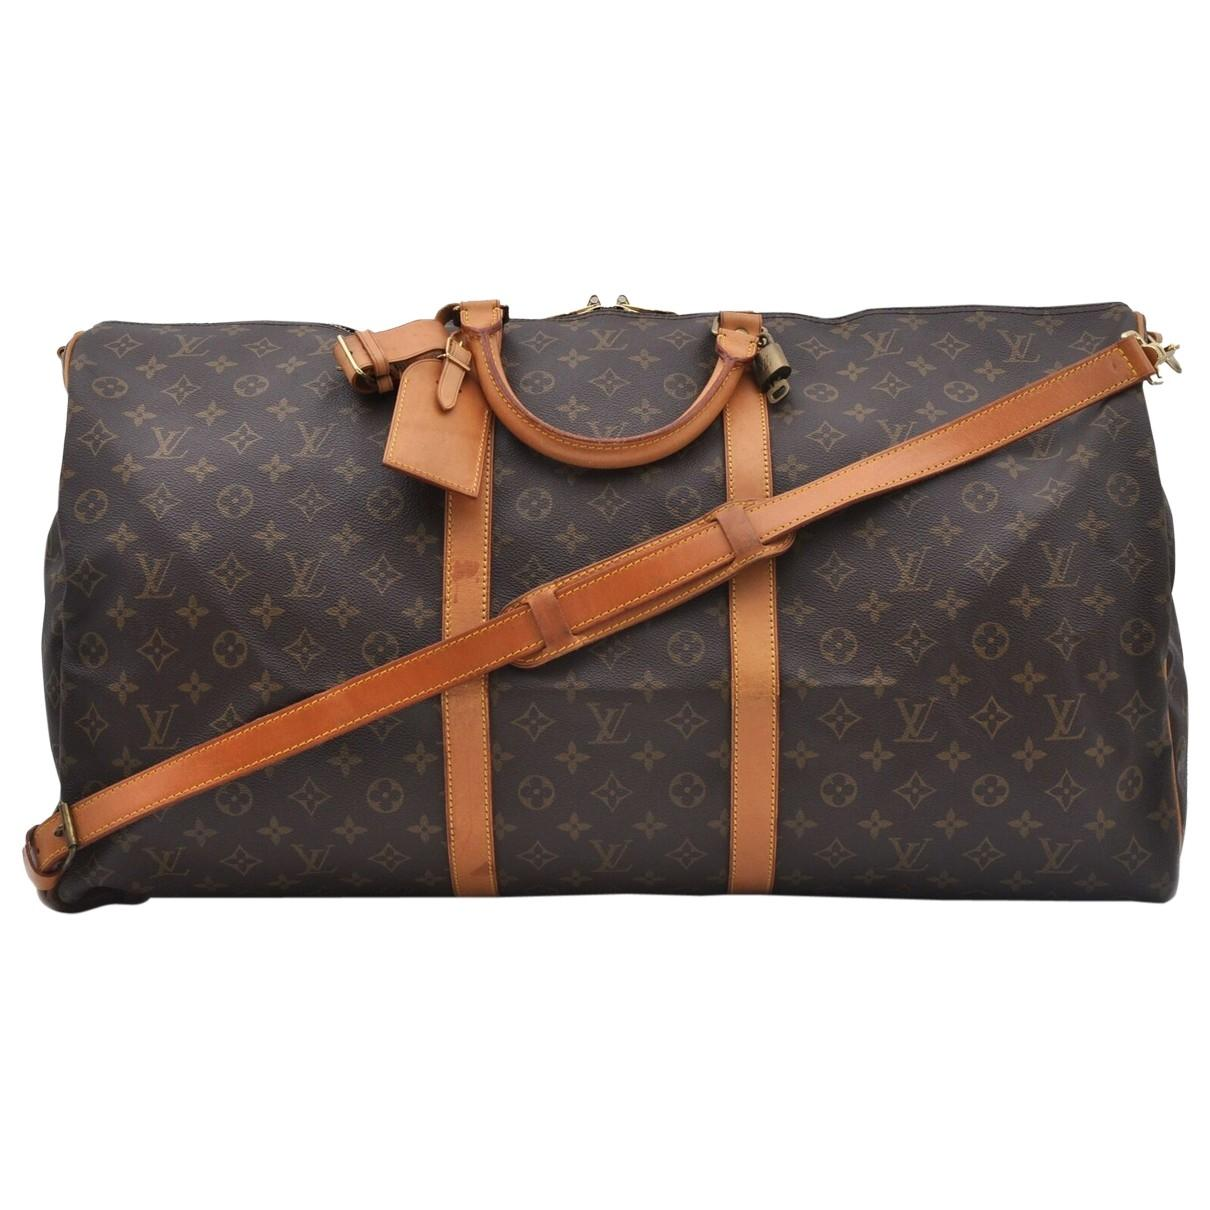 c67698564 Lyst - Louis Vuitton Vintage Keepall Brown Cloth Travel Bag in Brown